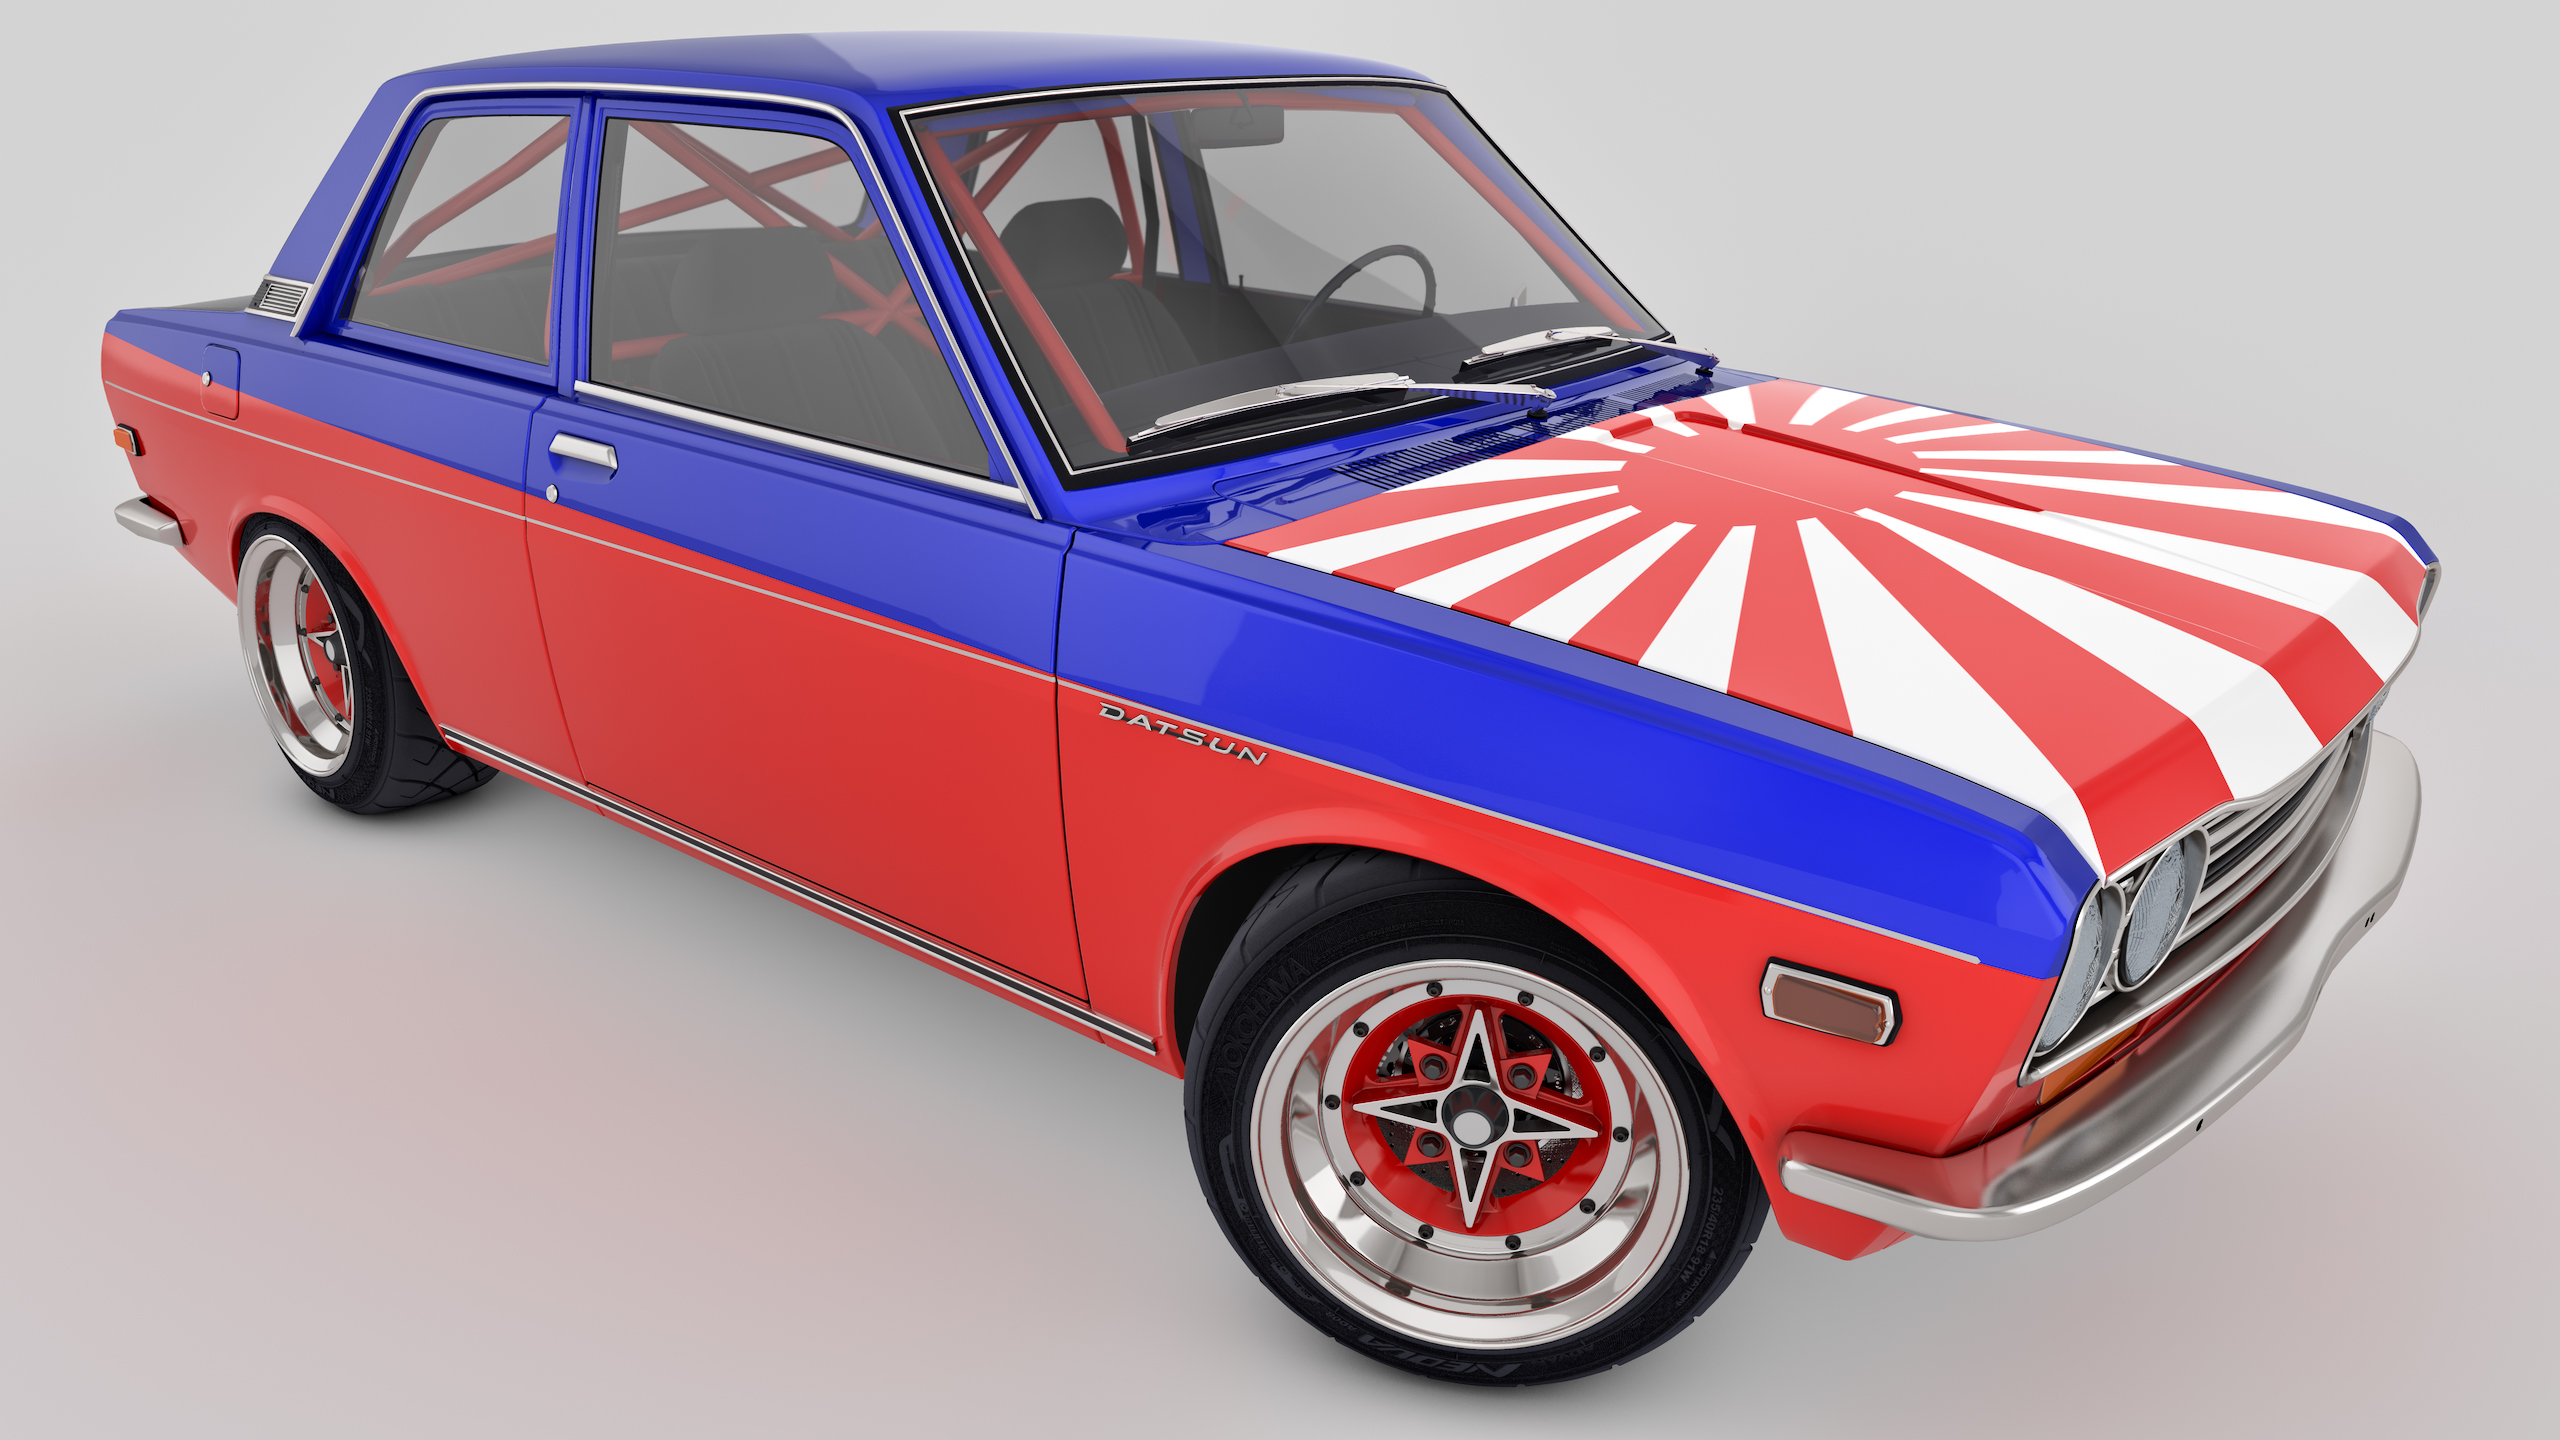 1970 Datsun 510 Wallpaper Best Cool Wallpaper HD Download 2560x1440